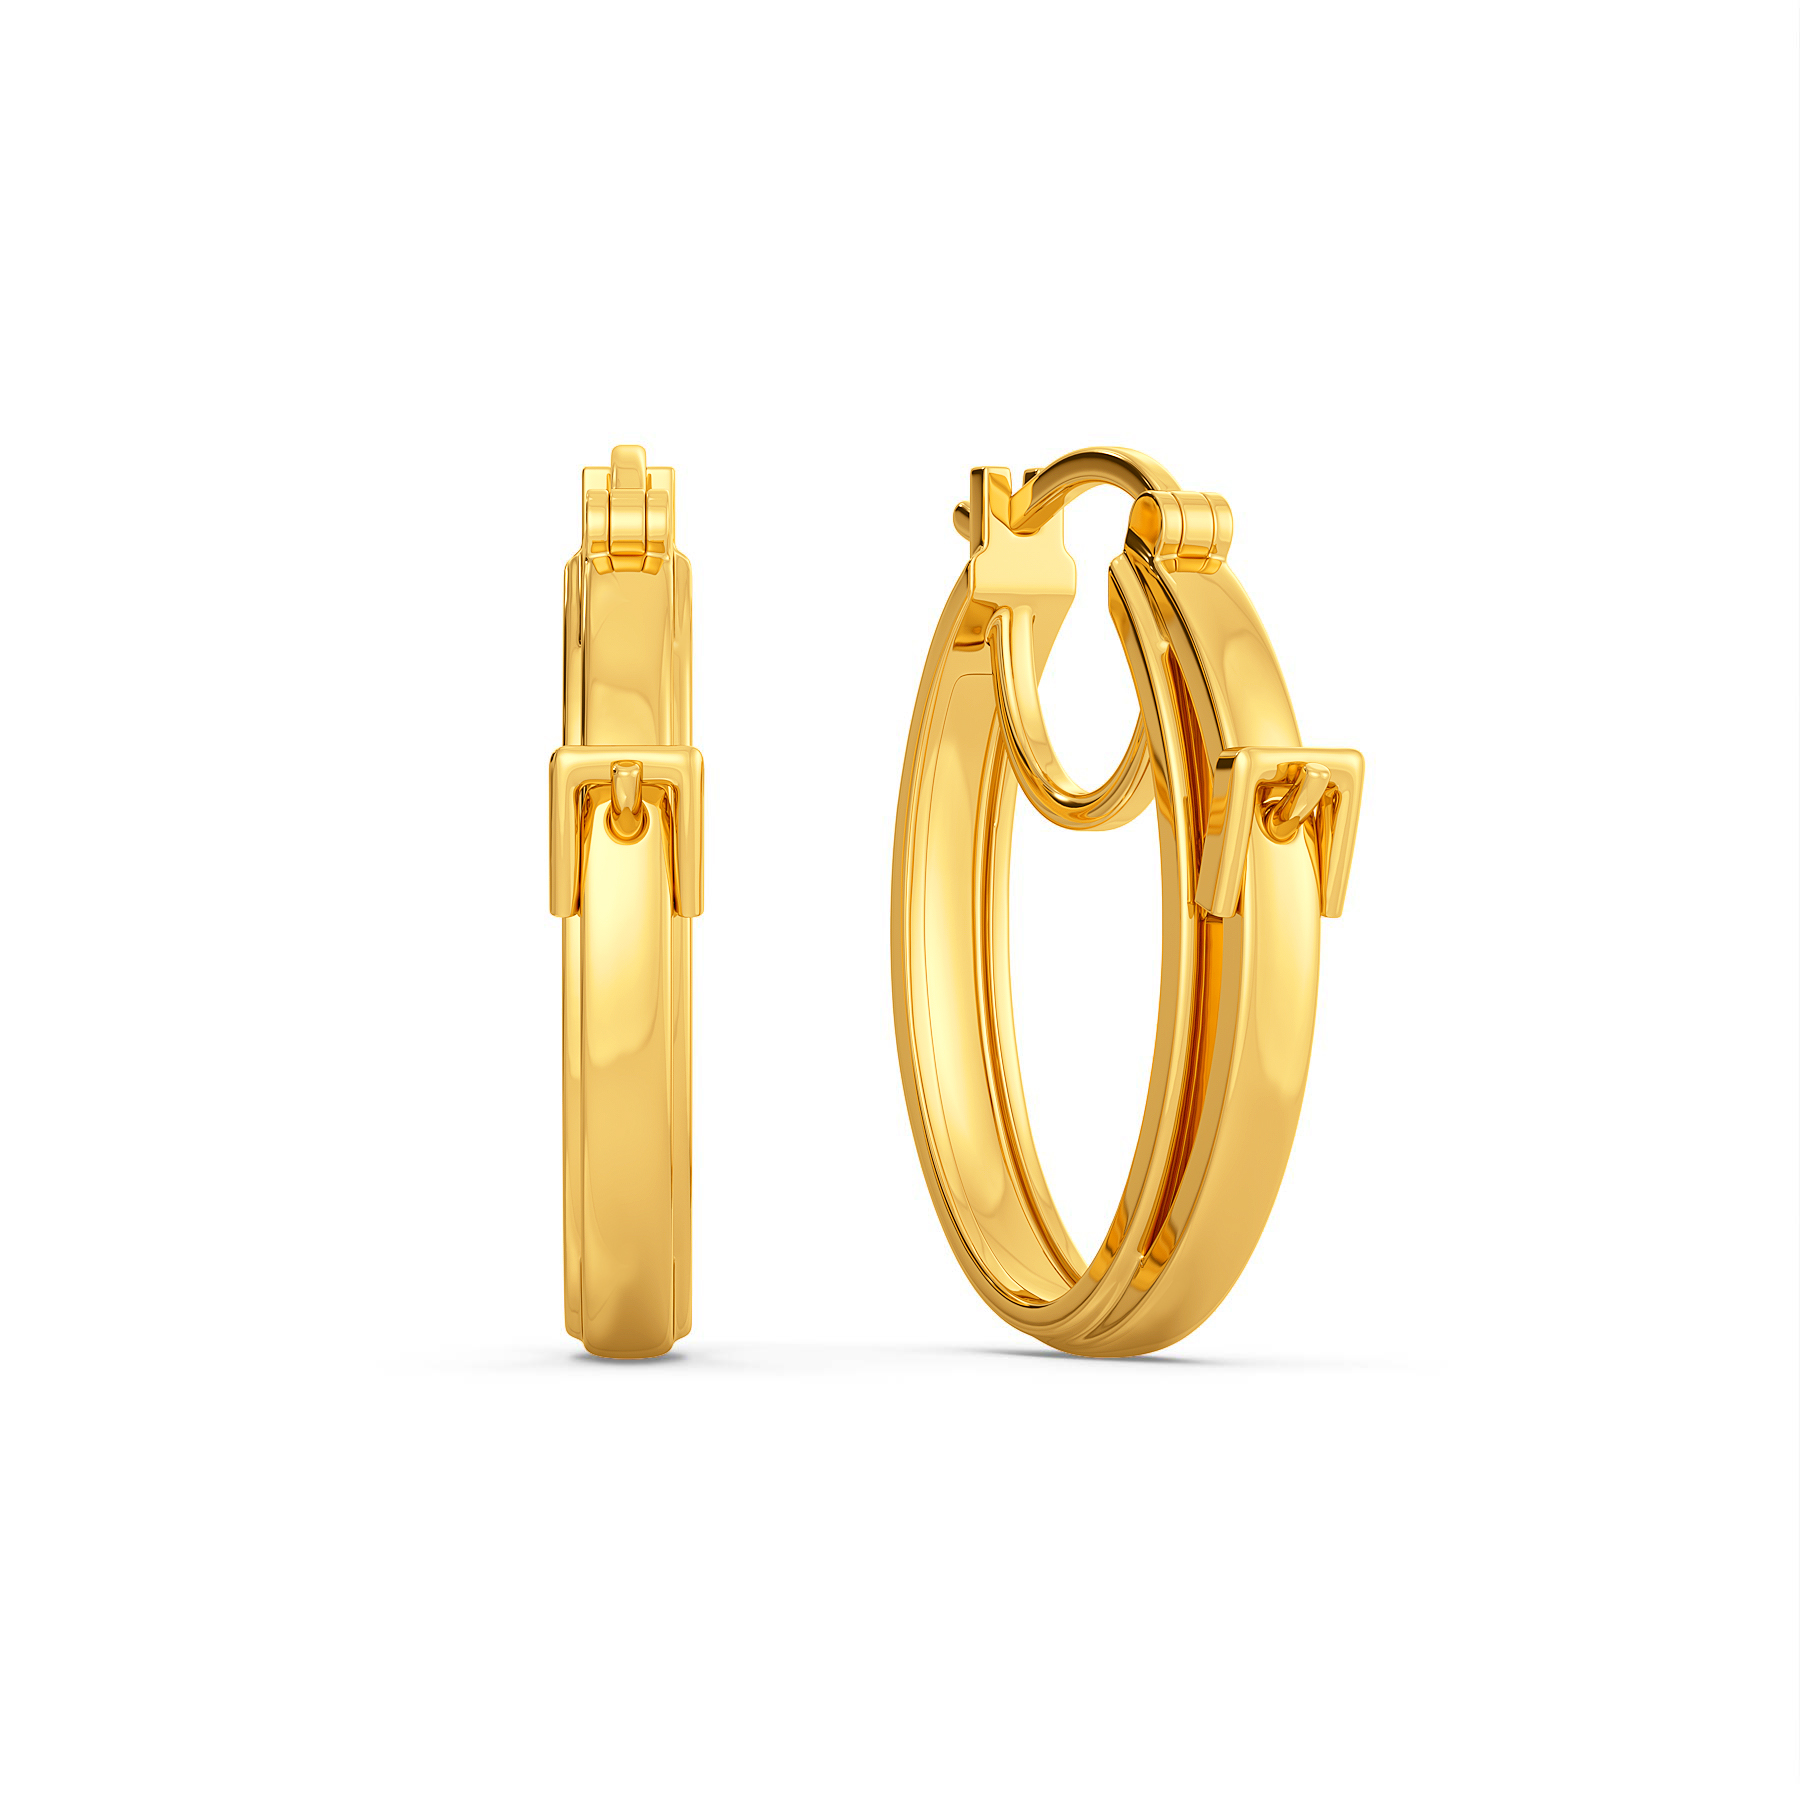 Claspin' Confident Gold Earrings